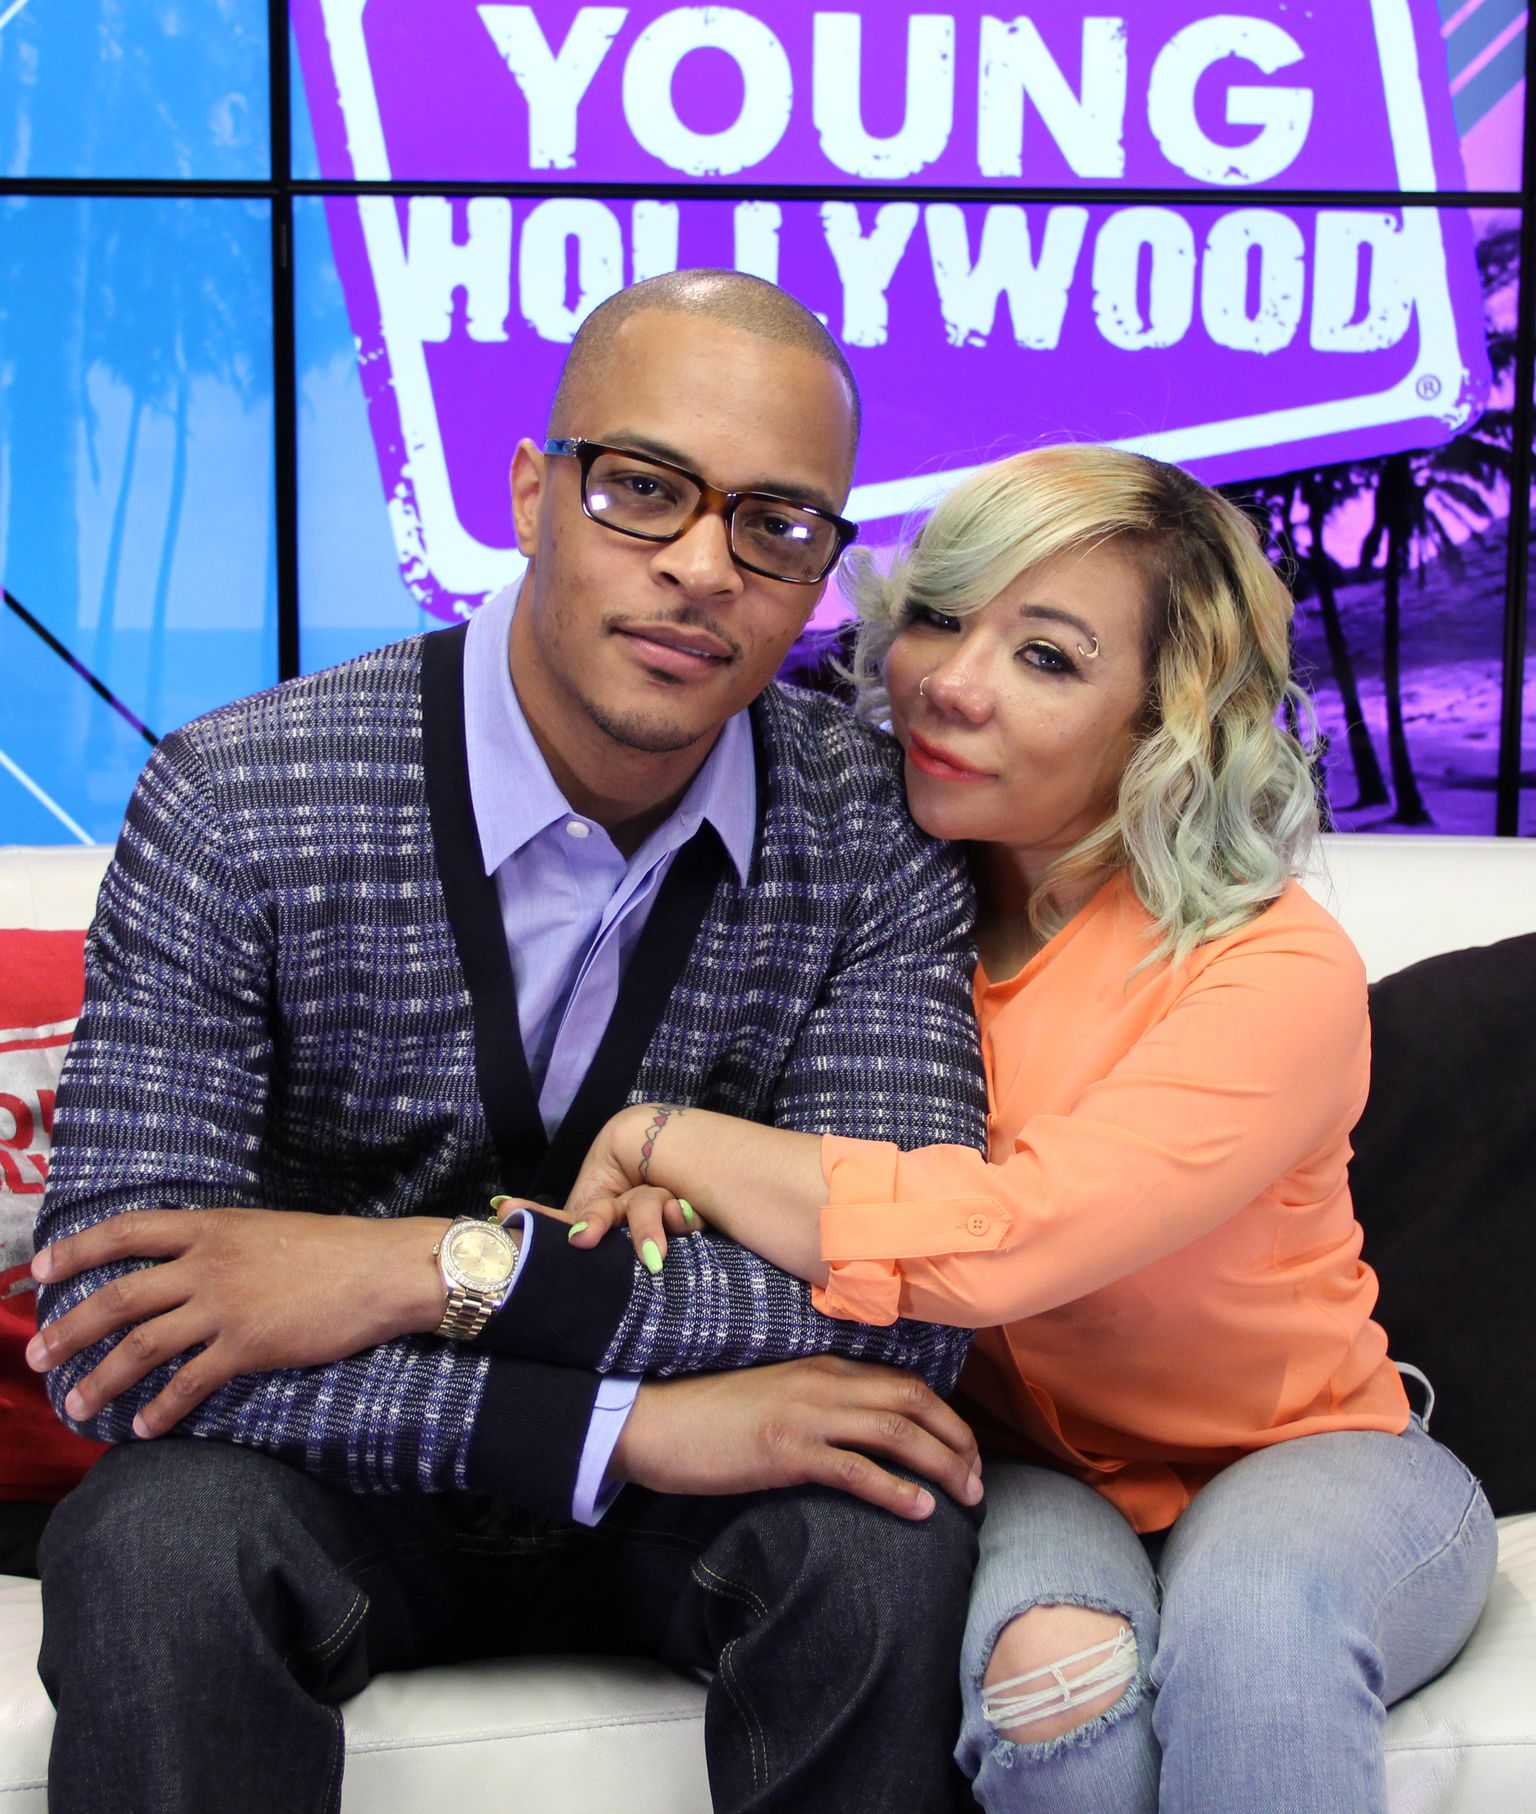 T.I. and Tiny Harris at the Young Hollywood Studio on June 1, 2015 in Los Angeles, California. | Source: Getty Images